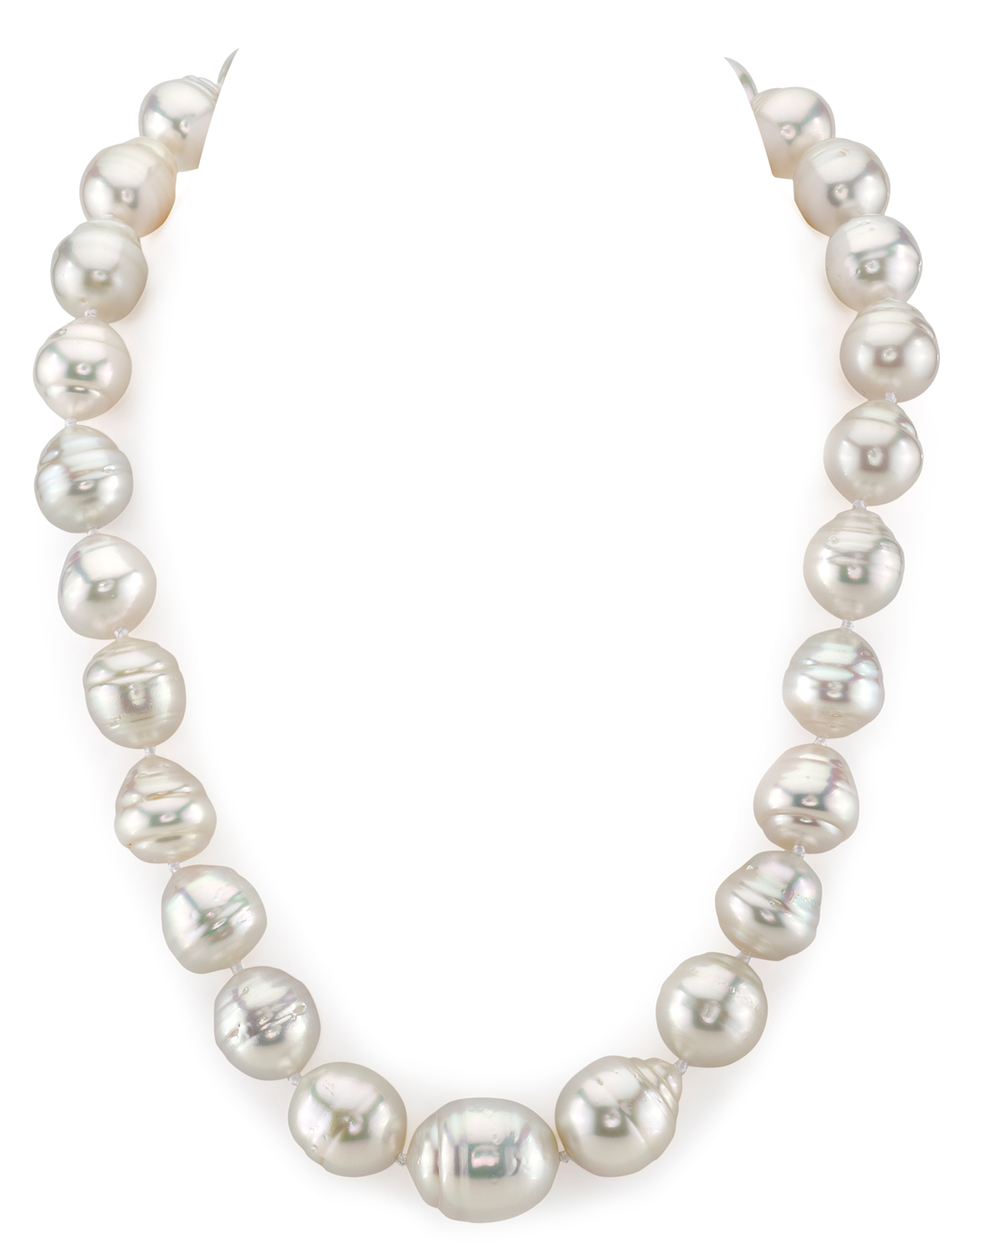 13-17mm White South Sea Baroque Pearl Necklace